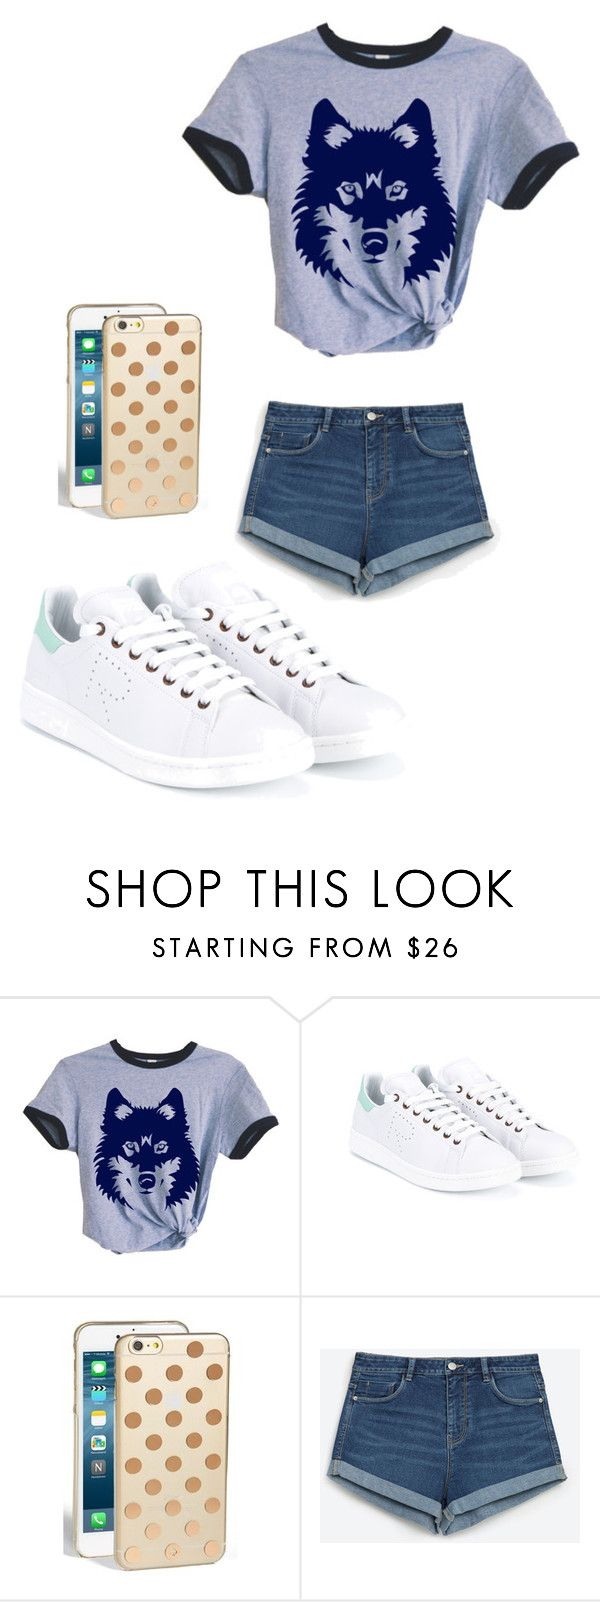 """Untitled #32"" by breanna113 ❤ liked on Polyvore featuring adidas, Kate Spade and Zara"